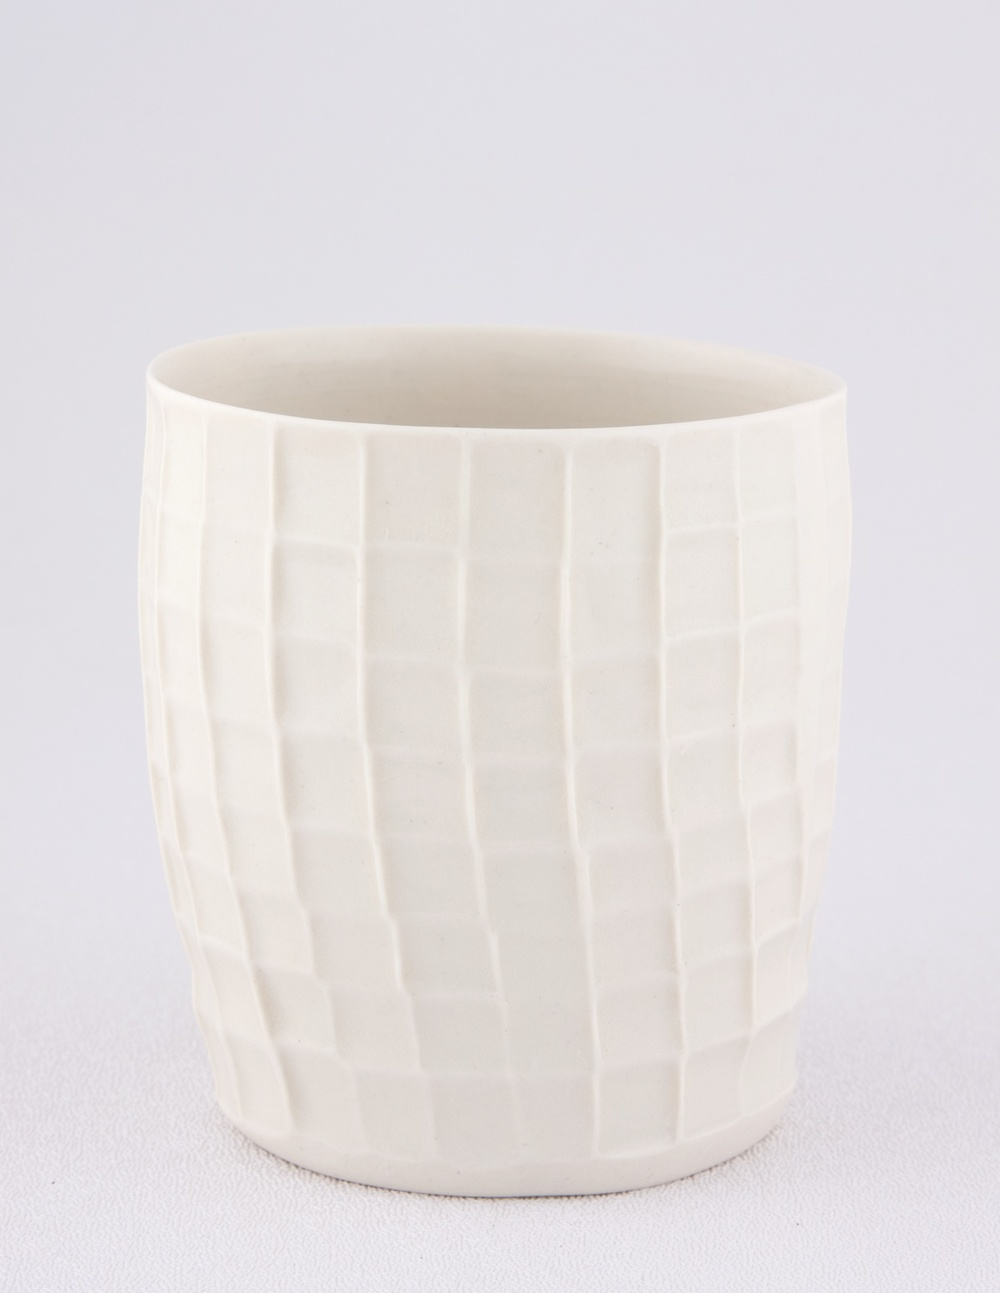 Shio Kusaka  Untitled (cup)  2009 Porcelain 3 ½h x 3w in SK018